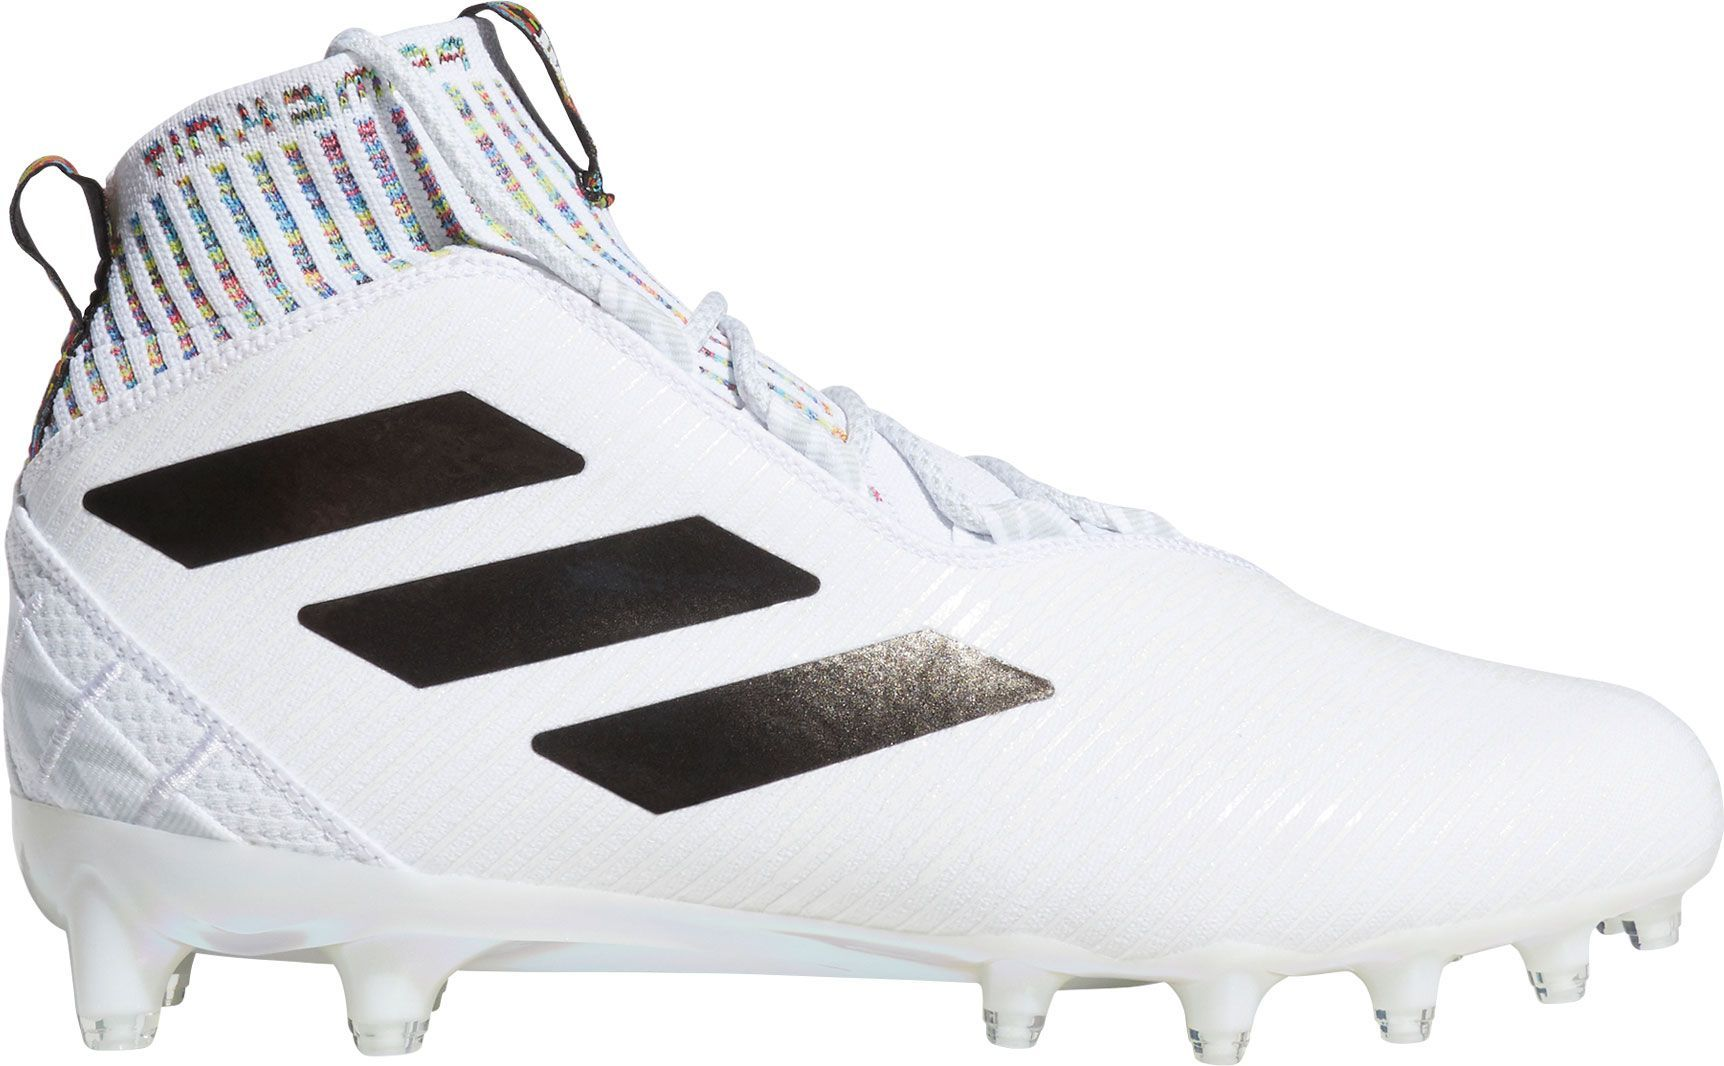 huge selection of 46b44 908a6 adidas Men s Freak Ultra Football Cleats, Size  10.0, White